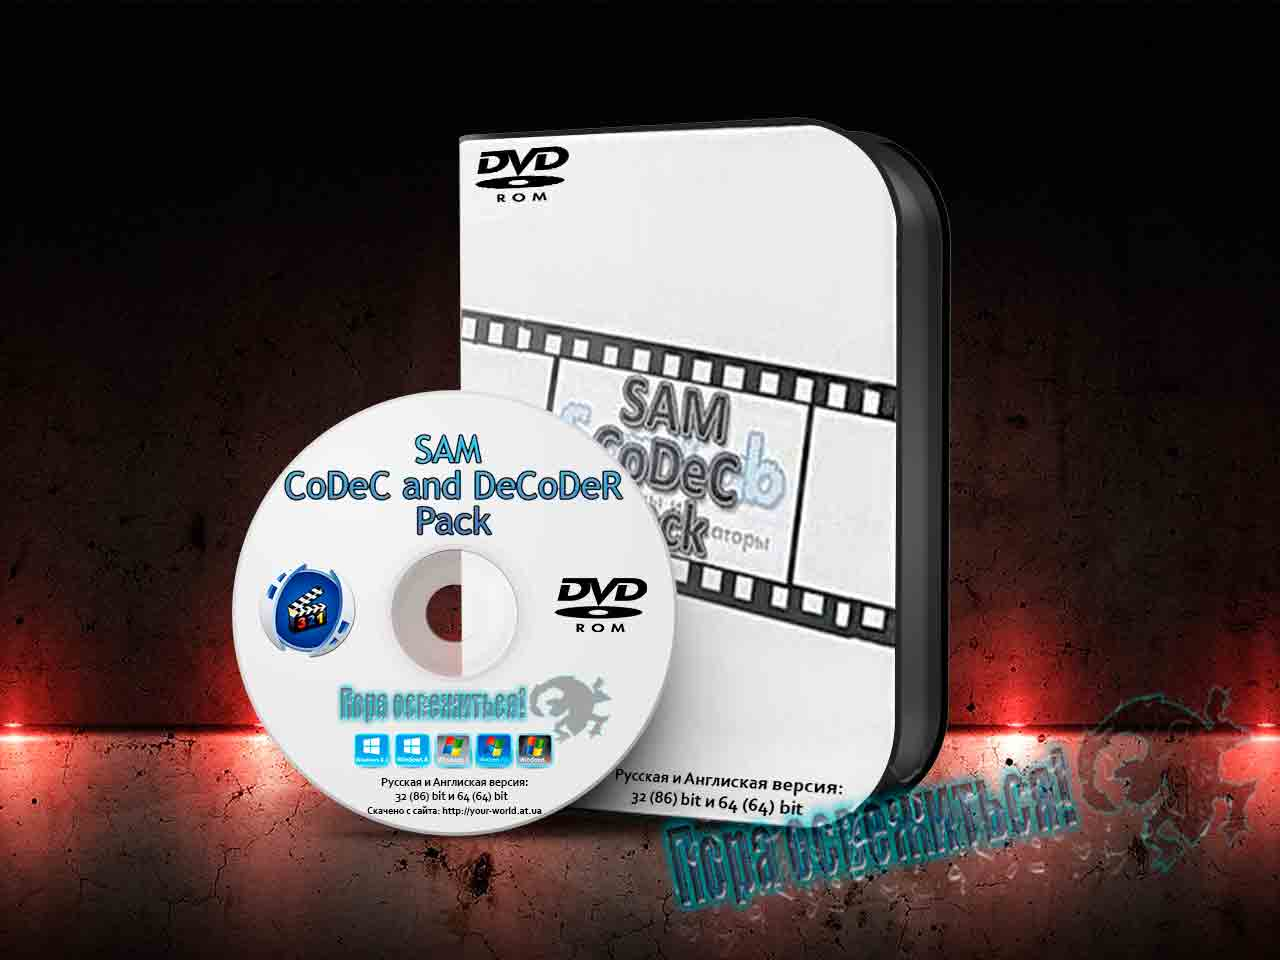 SAM CoDeC and DeCoDeR Pack 2015 5 85 Final